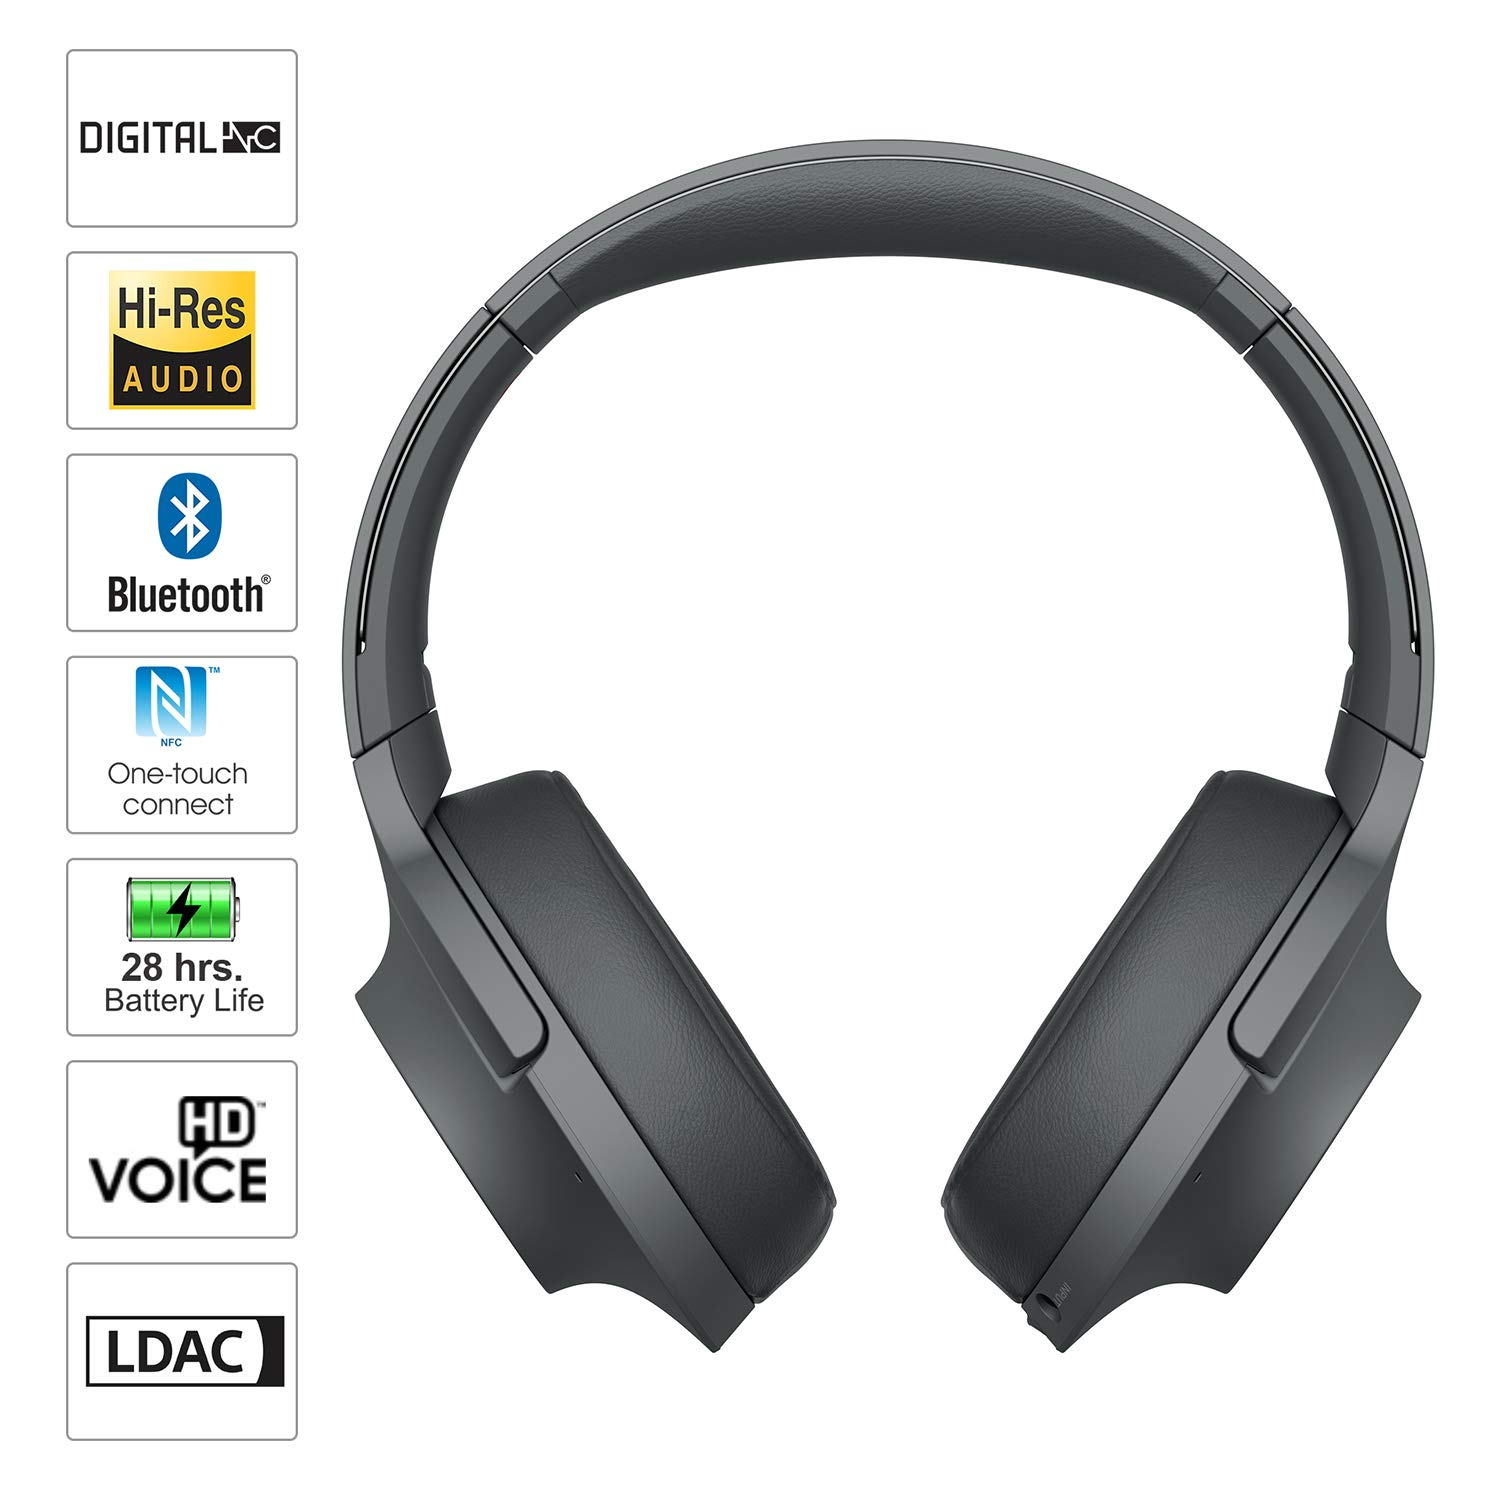 Sony Sony whh900n hear on 2 wireless overear noise cancelling high resolution headphones, 2.4 Ounce by Sony (Image #2)